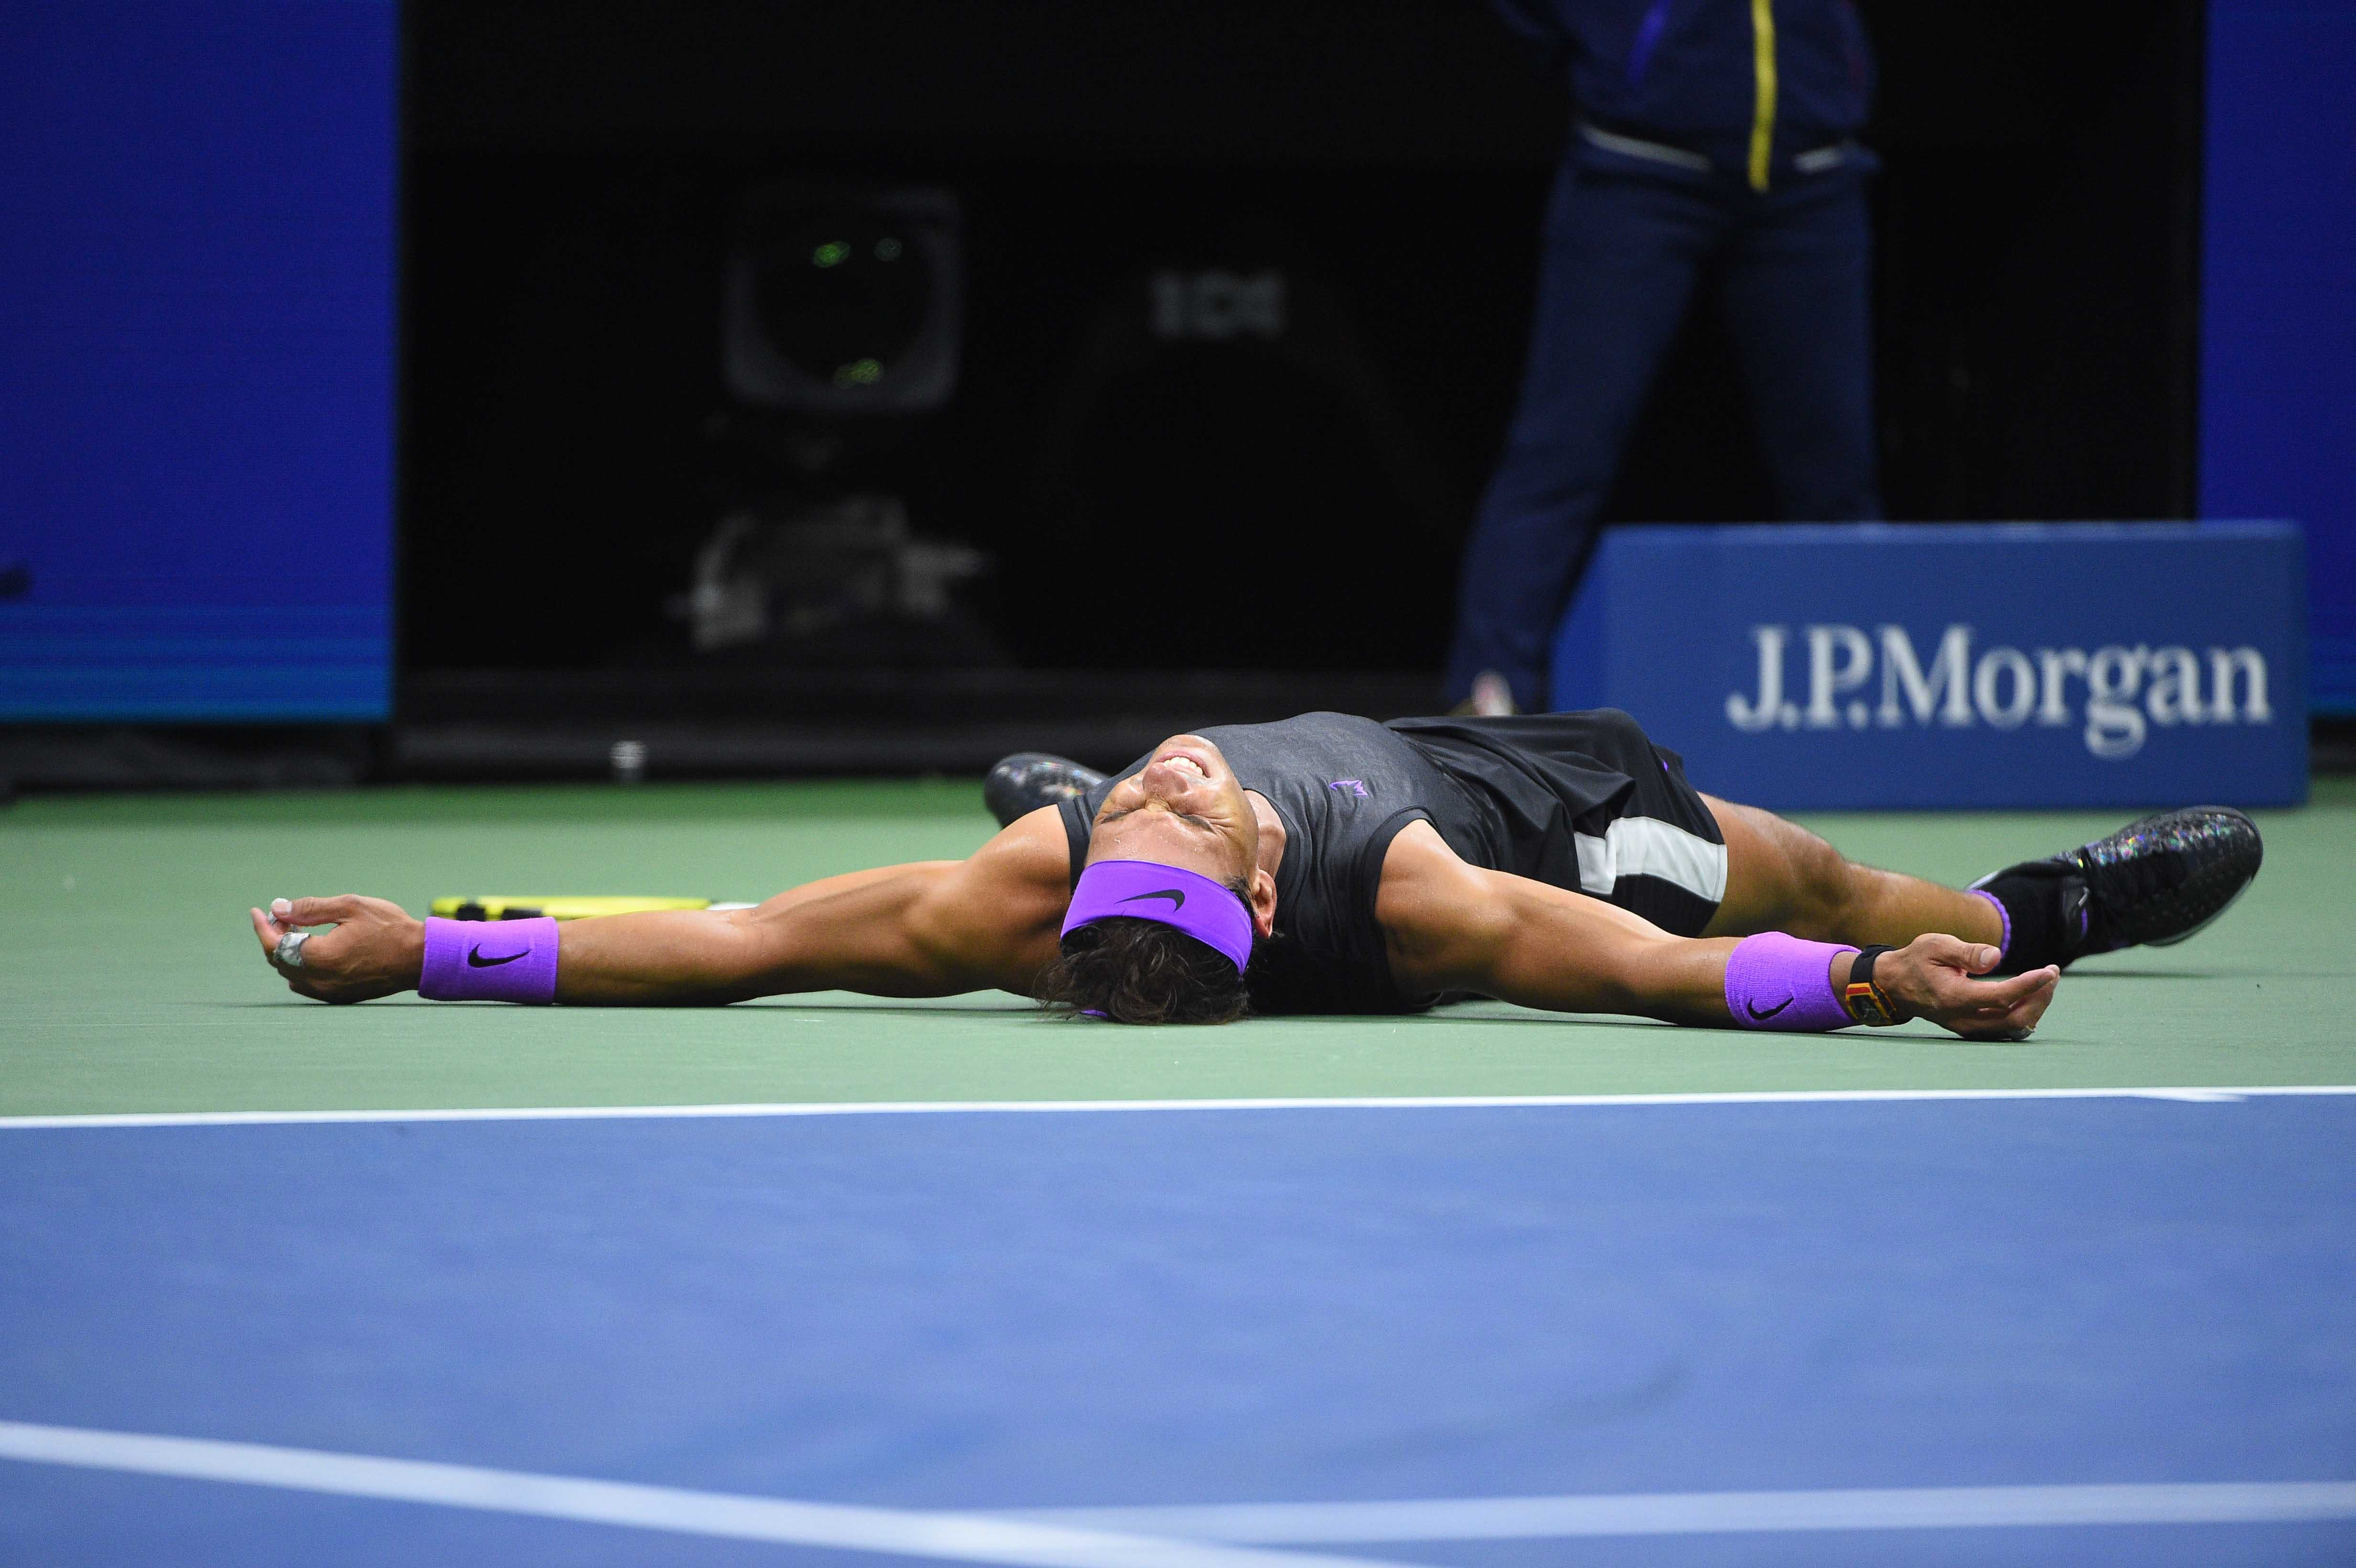 Rafael Nadal falling to the ground as he just won the 2019 US Open